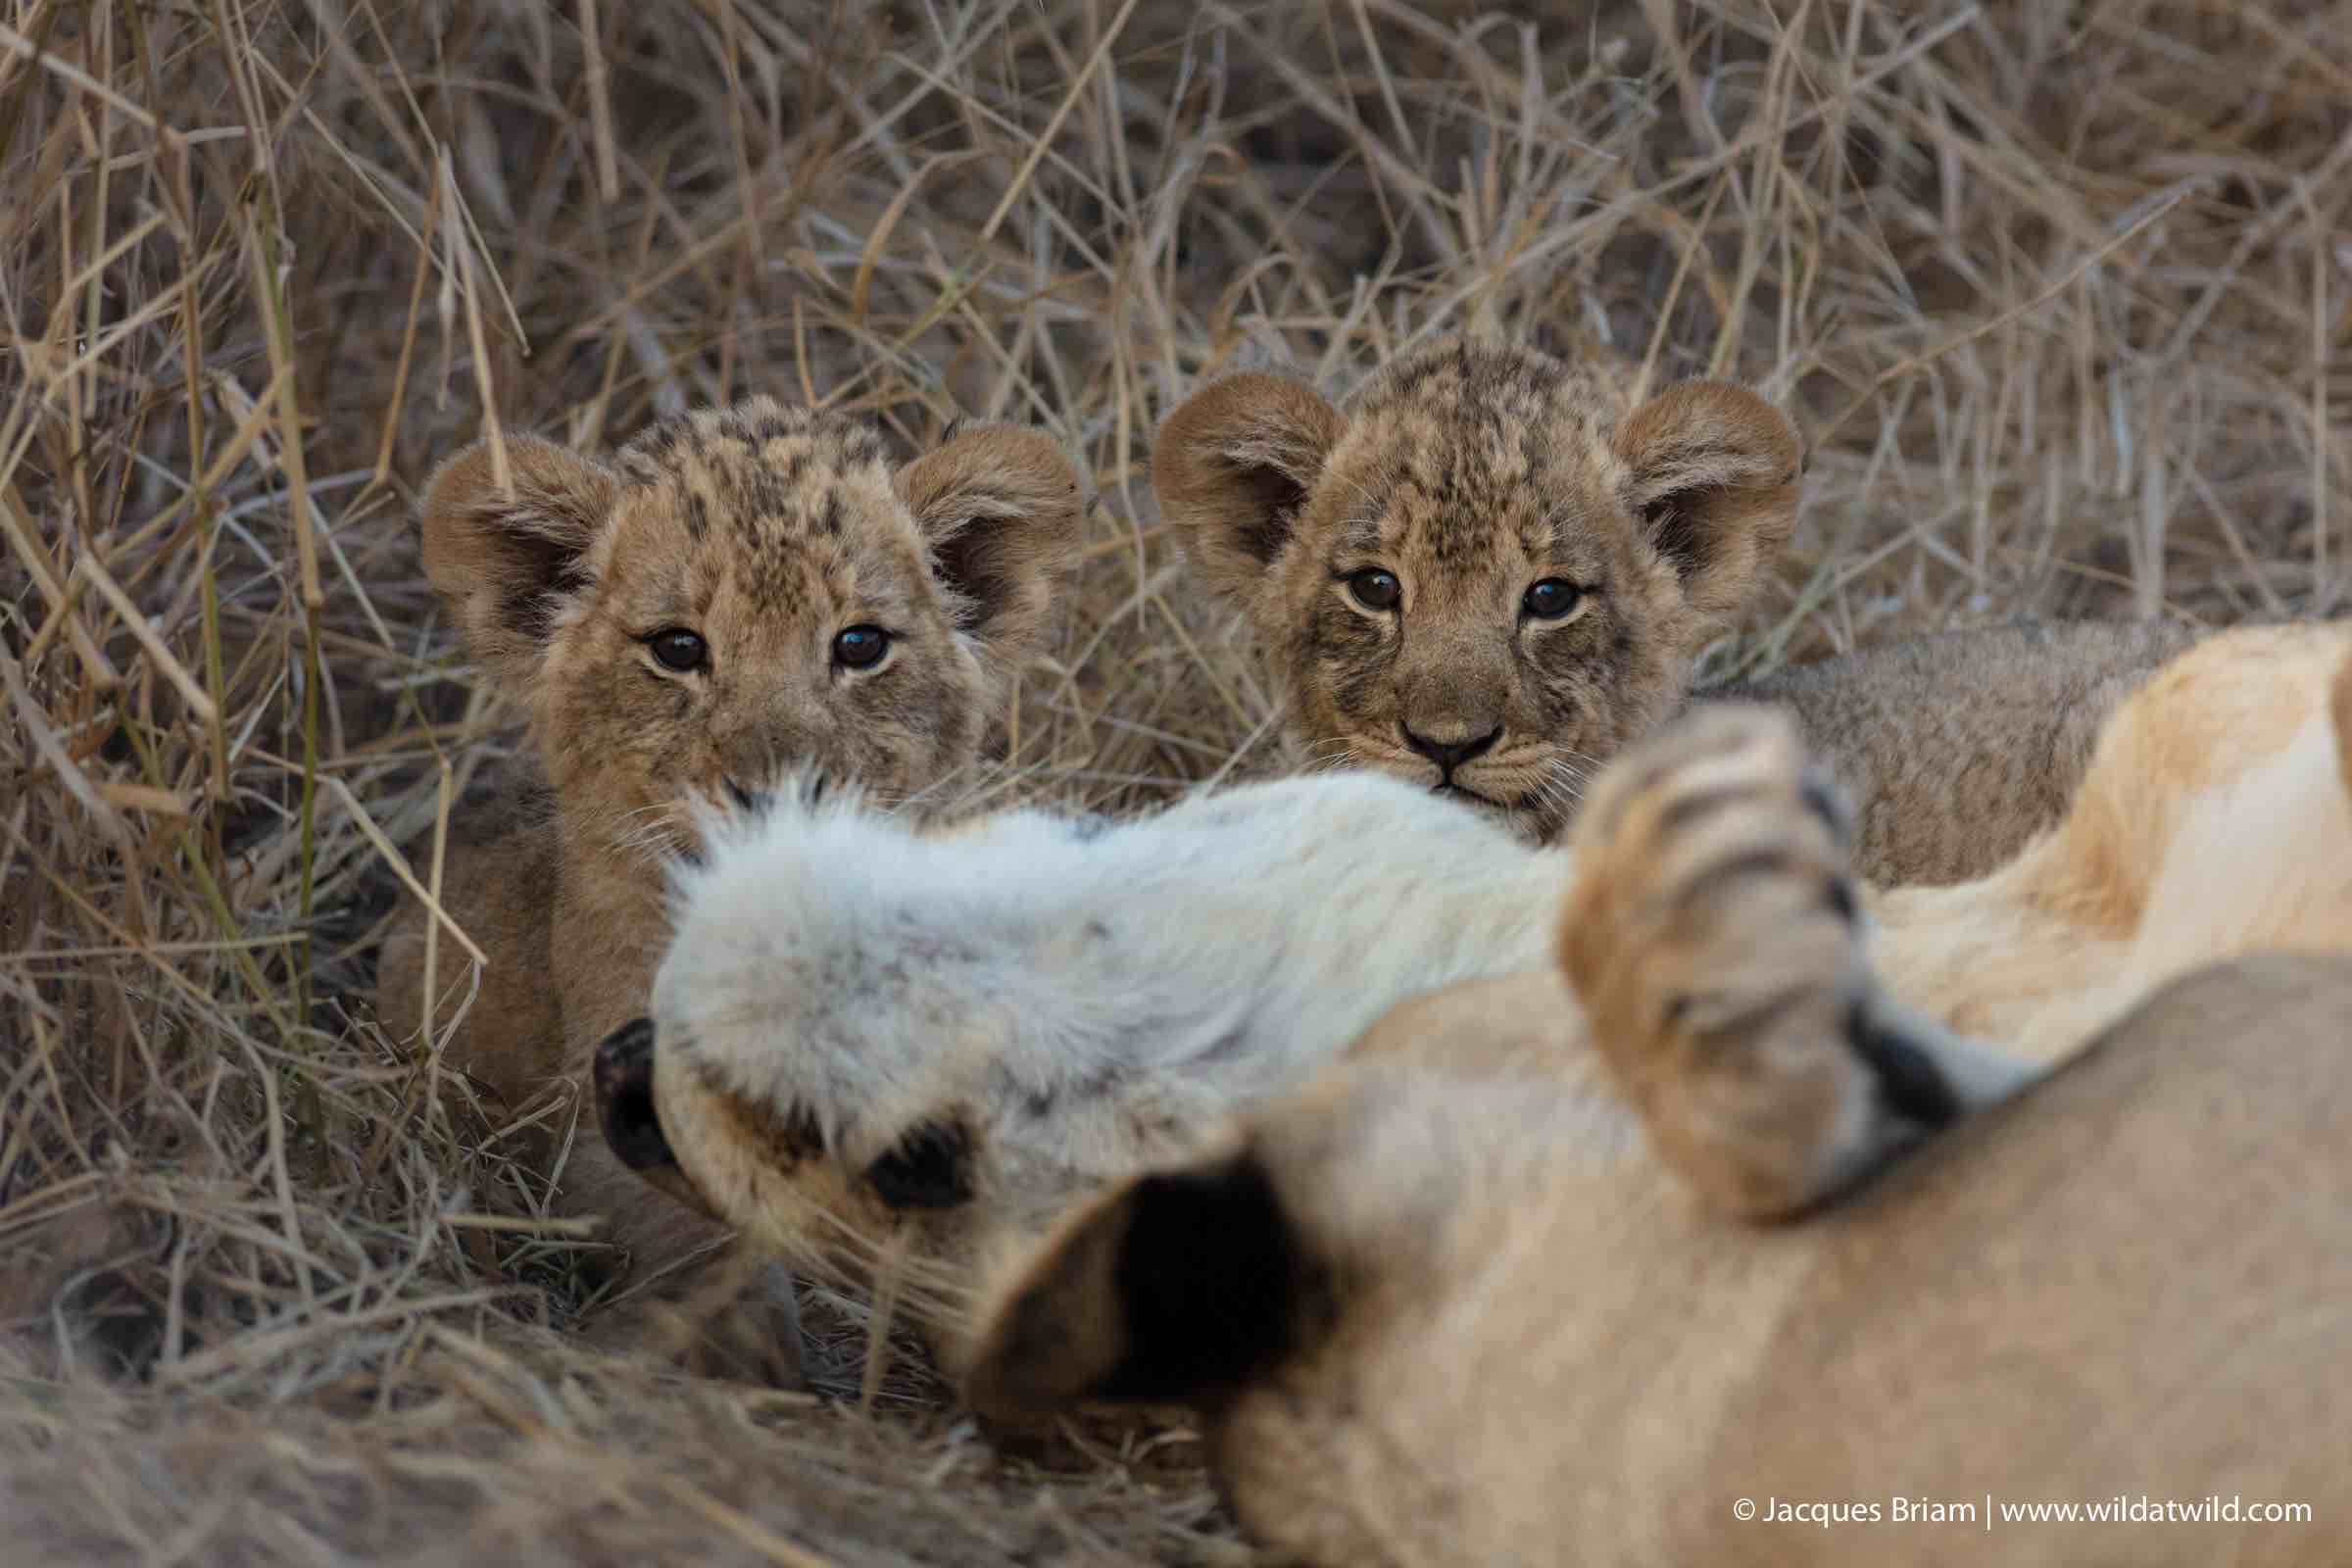 The two other cubs are equally curious as they peer at us from behind their mother.